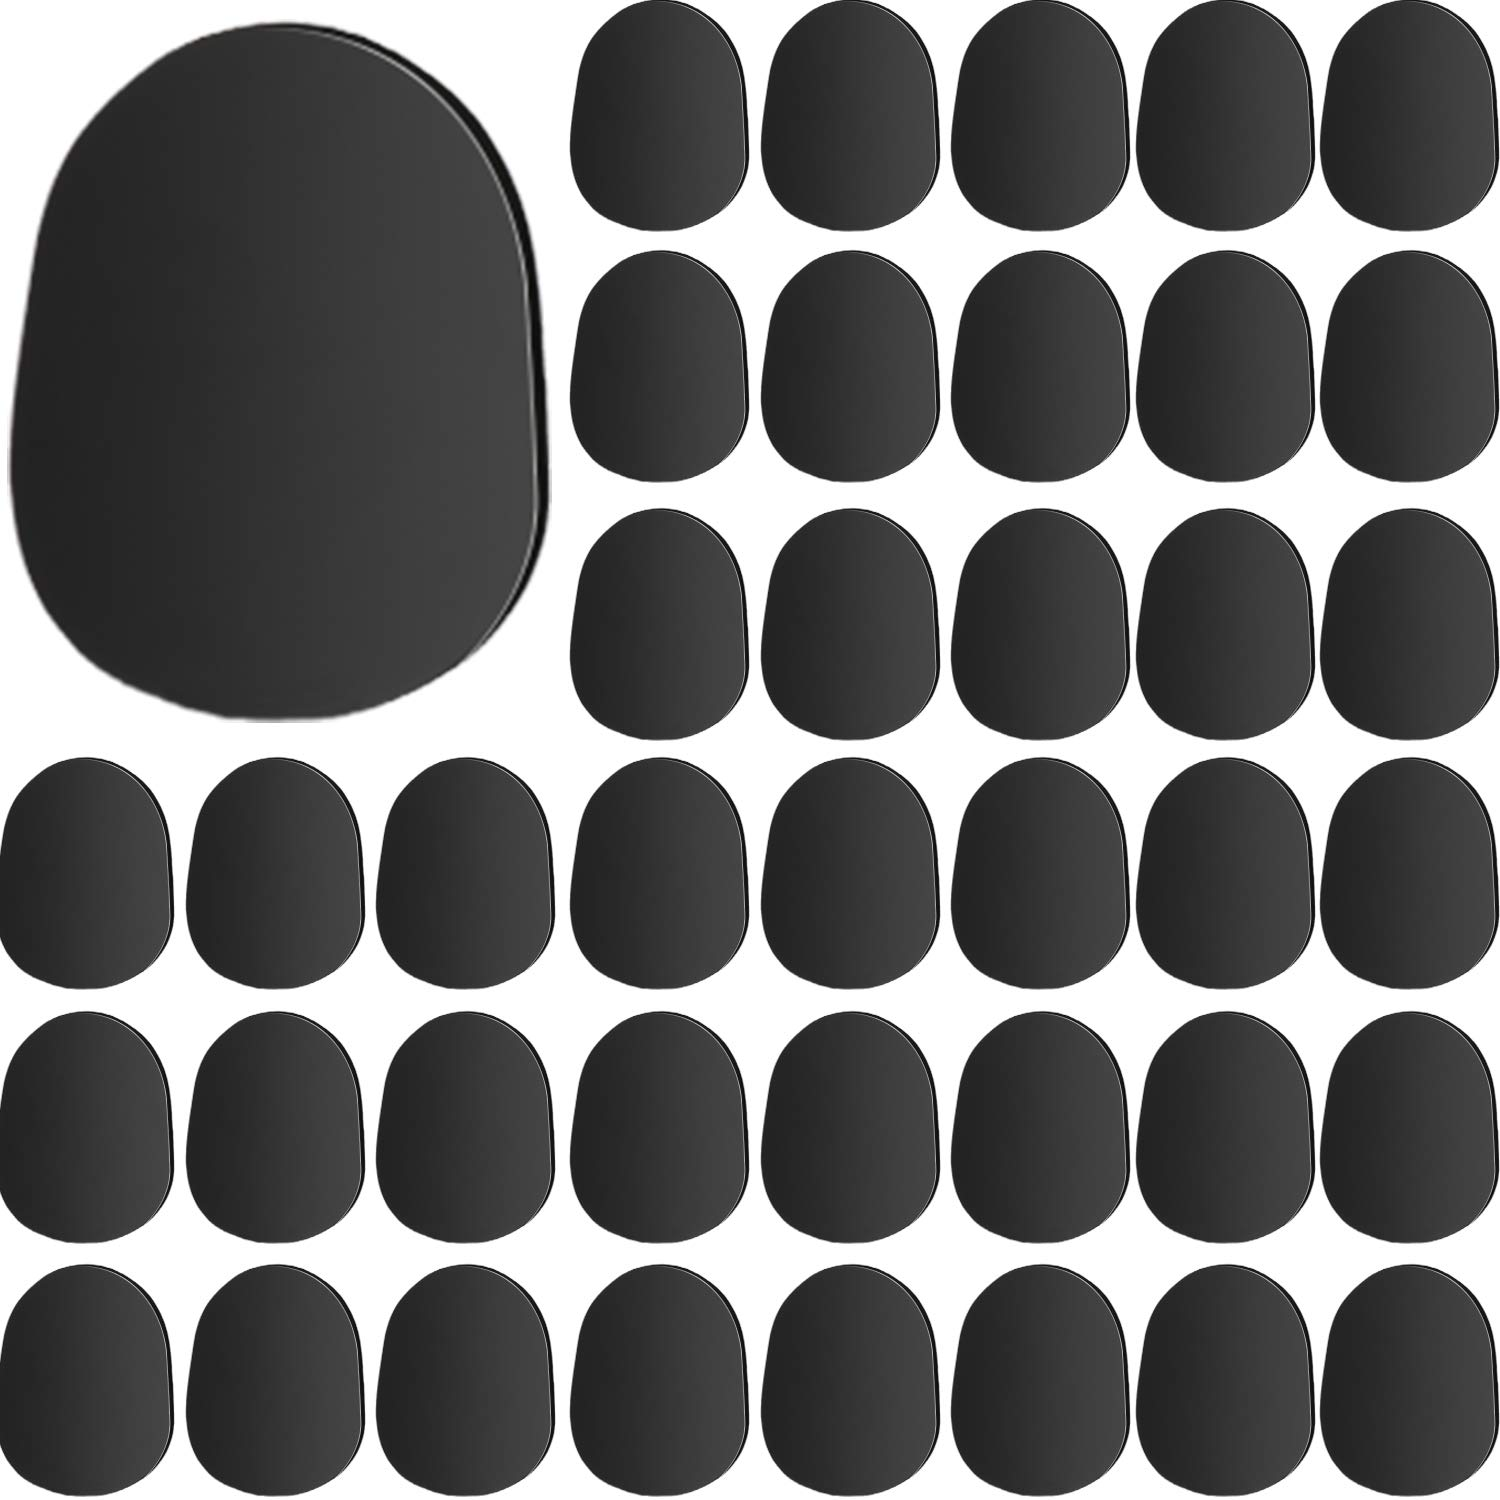 Tatuo 40 Pieces Black Saxophone and Clarinet Mouthpiece Cushions Sax Mouthpiece Patches Pads Cushions 0.8mm Thick Strong Adhesive